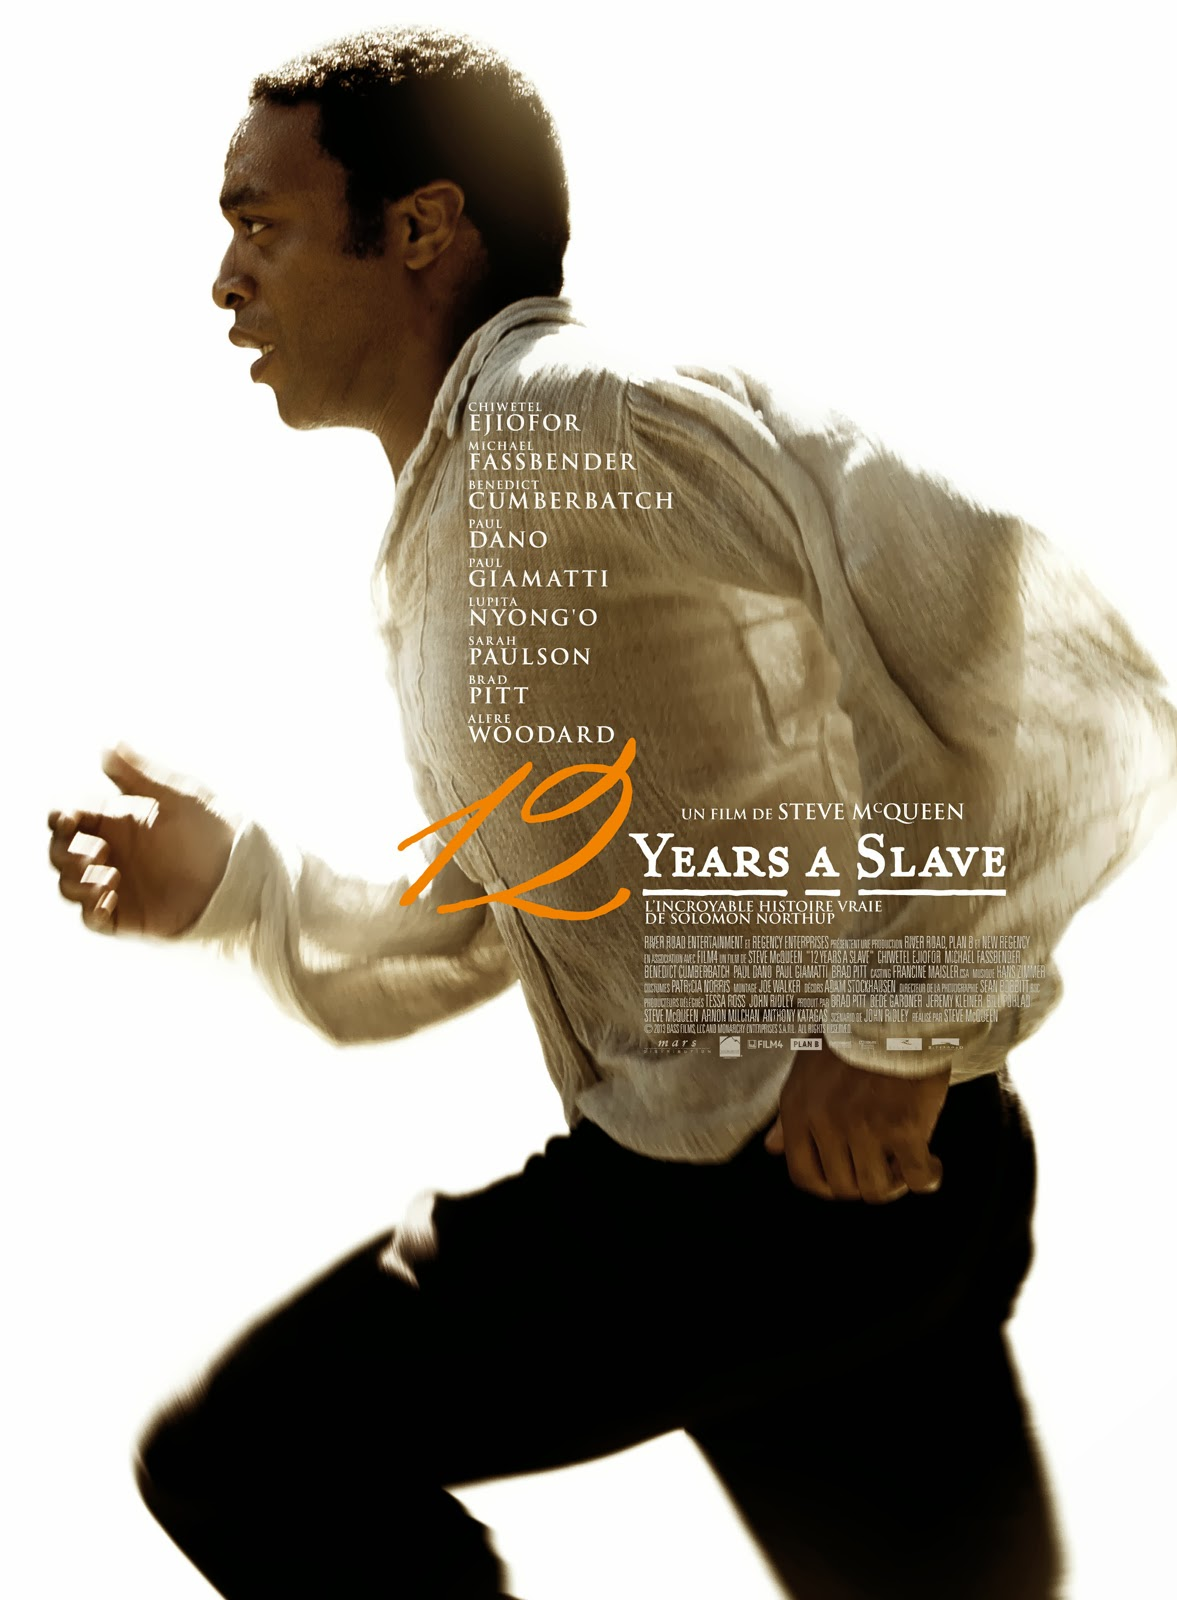 http://fuckingcinephiles.blogspot.fr/2014/01/critique-12-years-slave.html